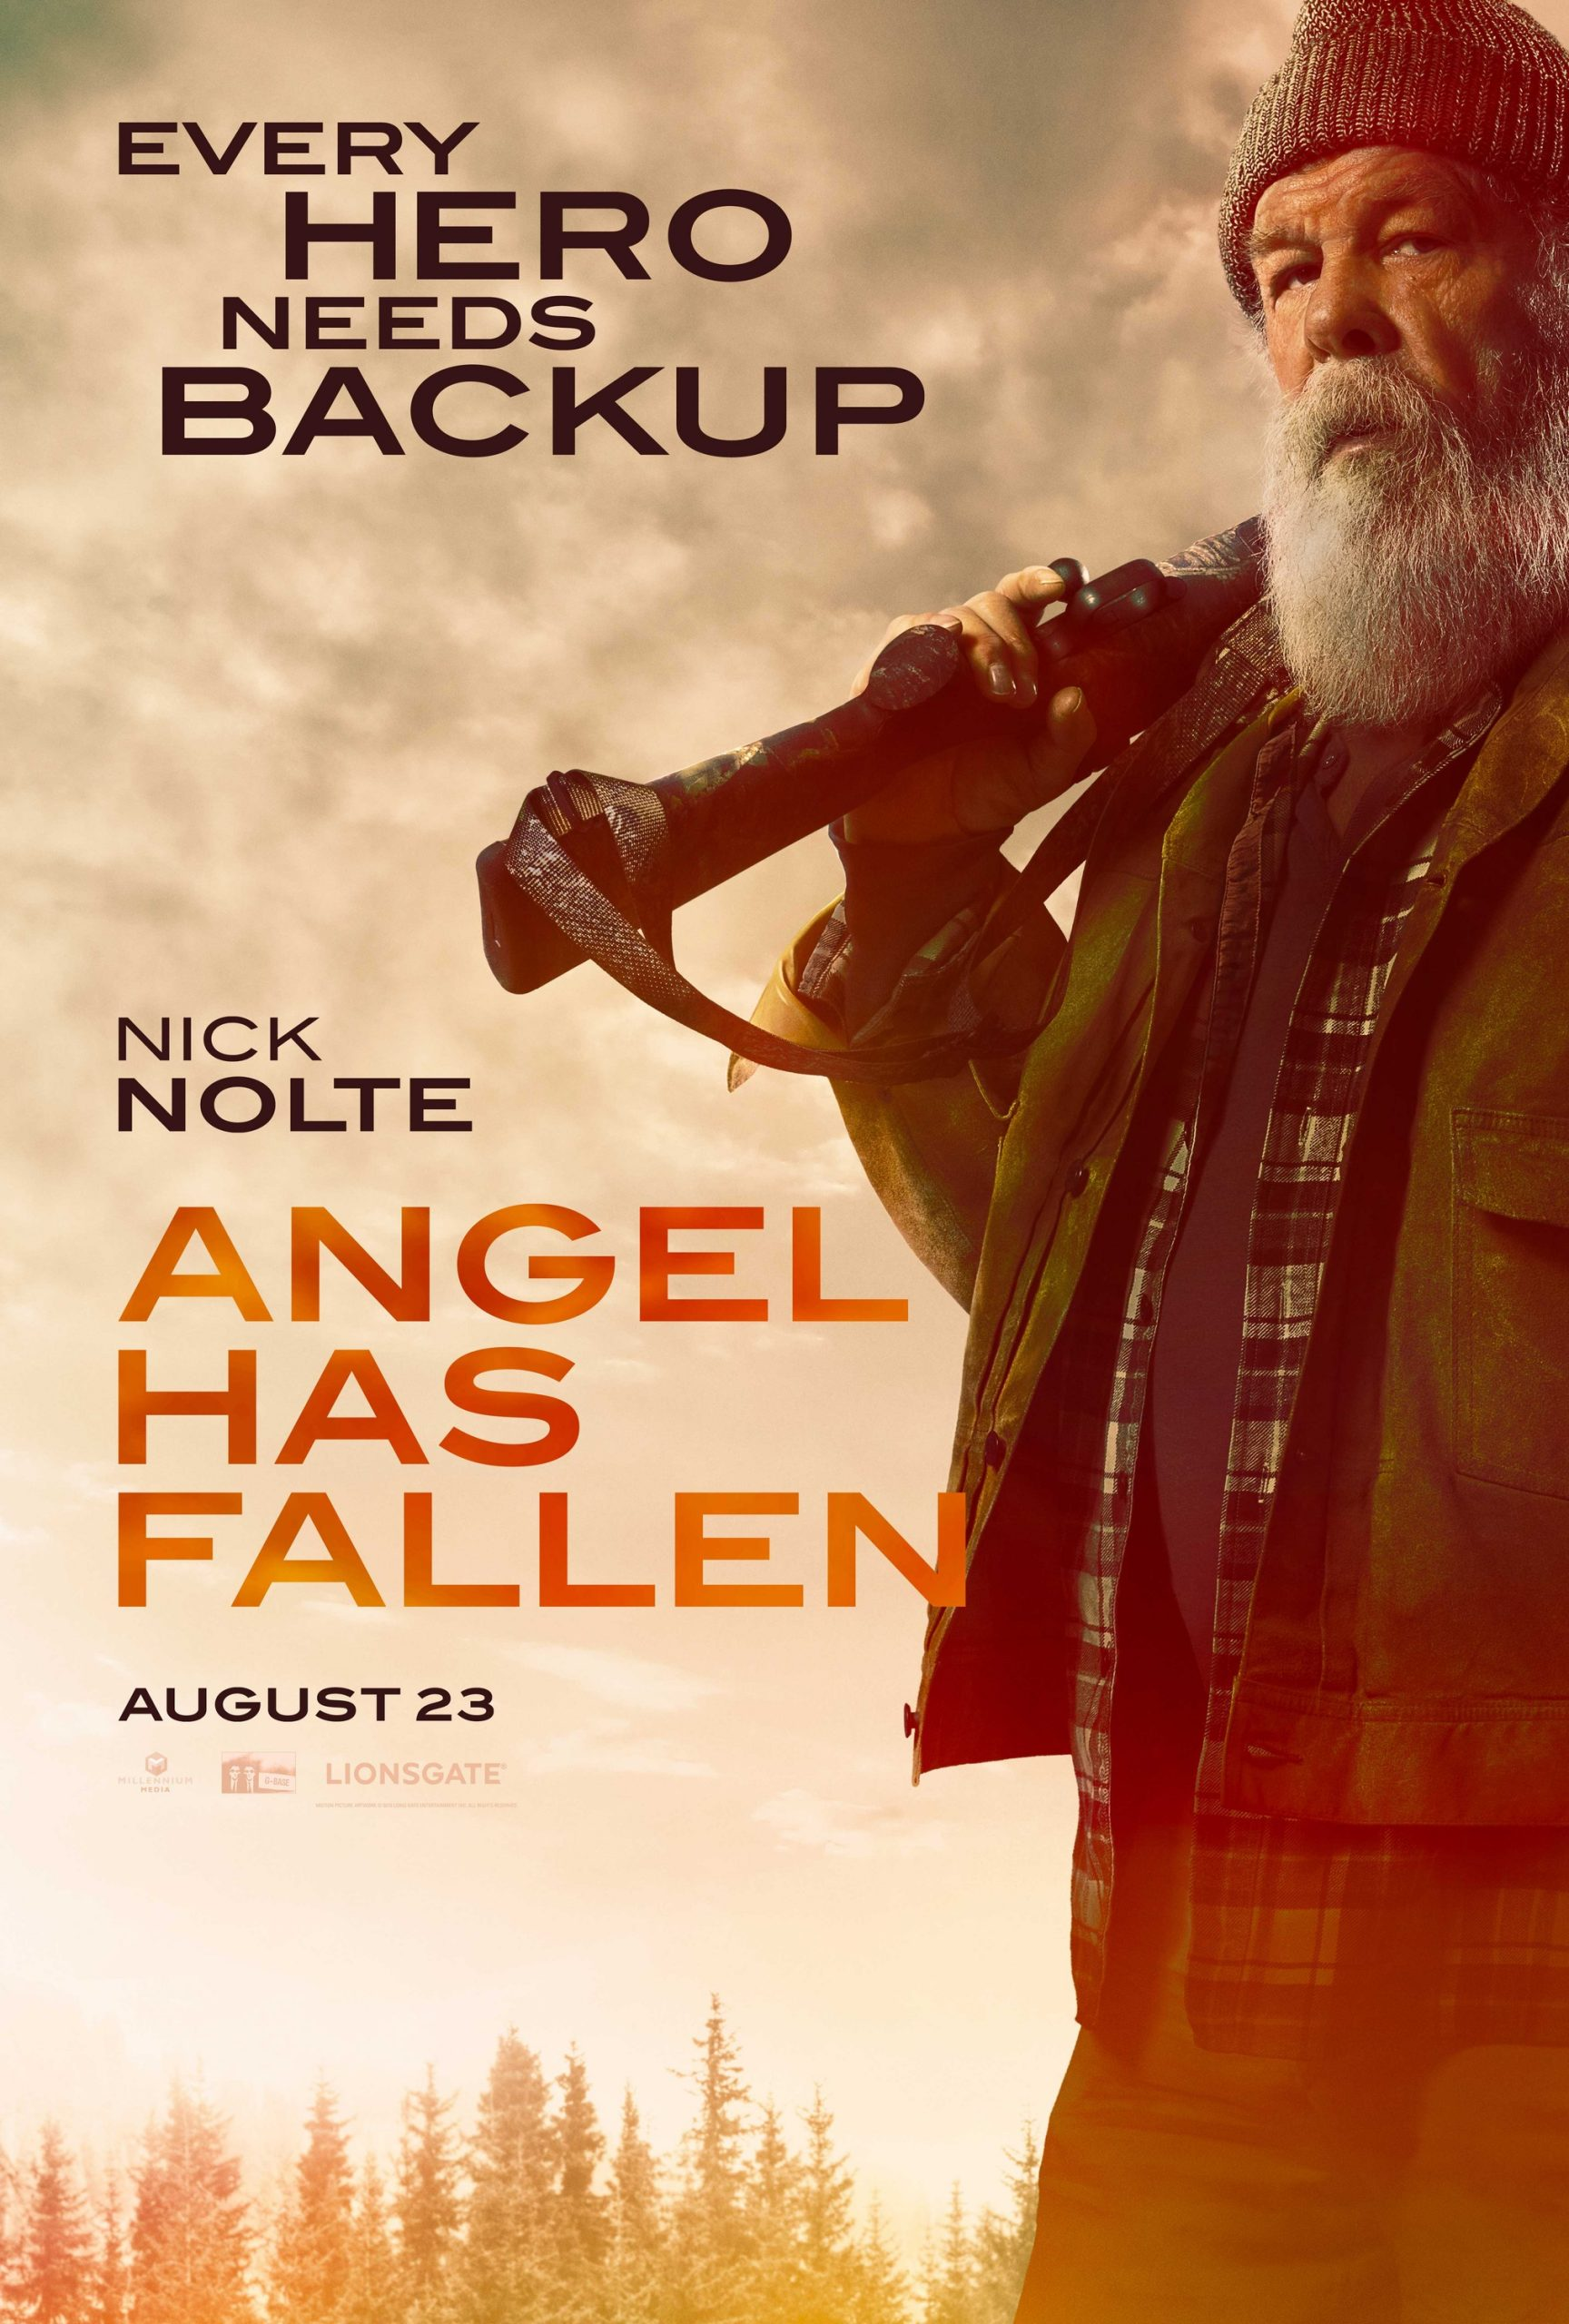 Angel Has Fallen Character Posters Nick Nolte as Clay Banning